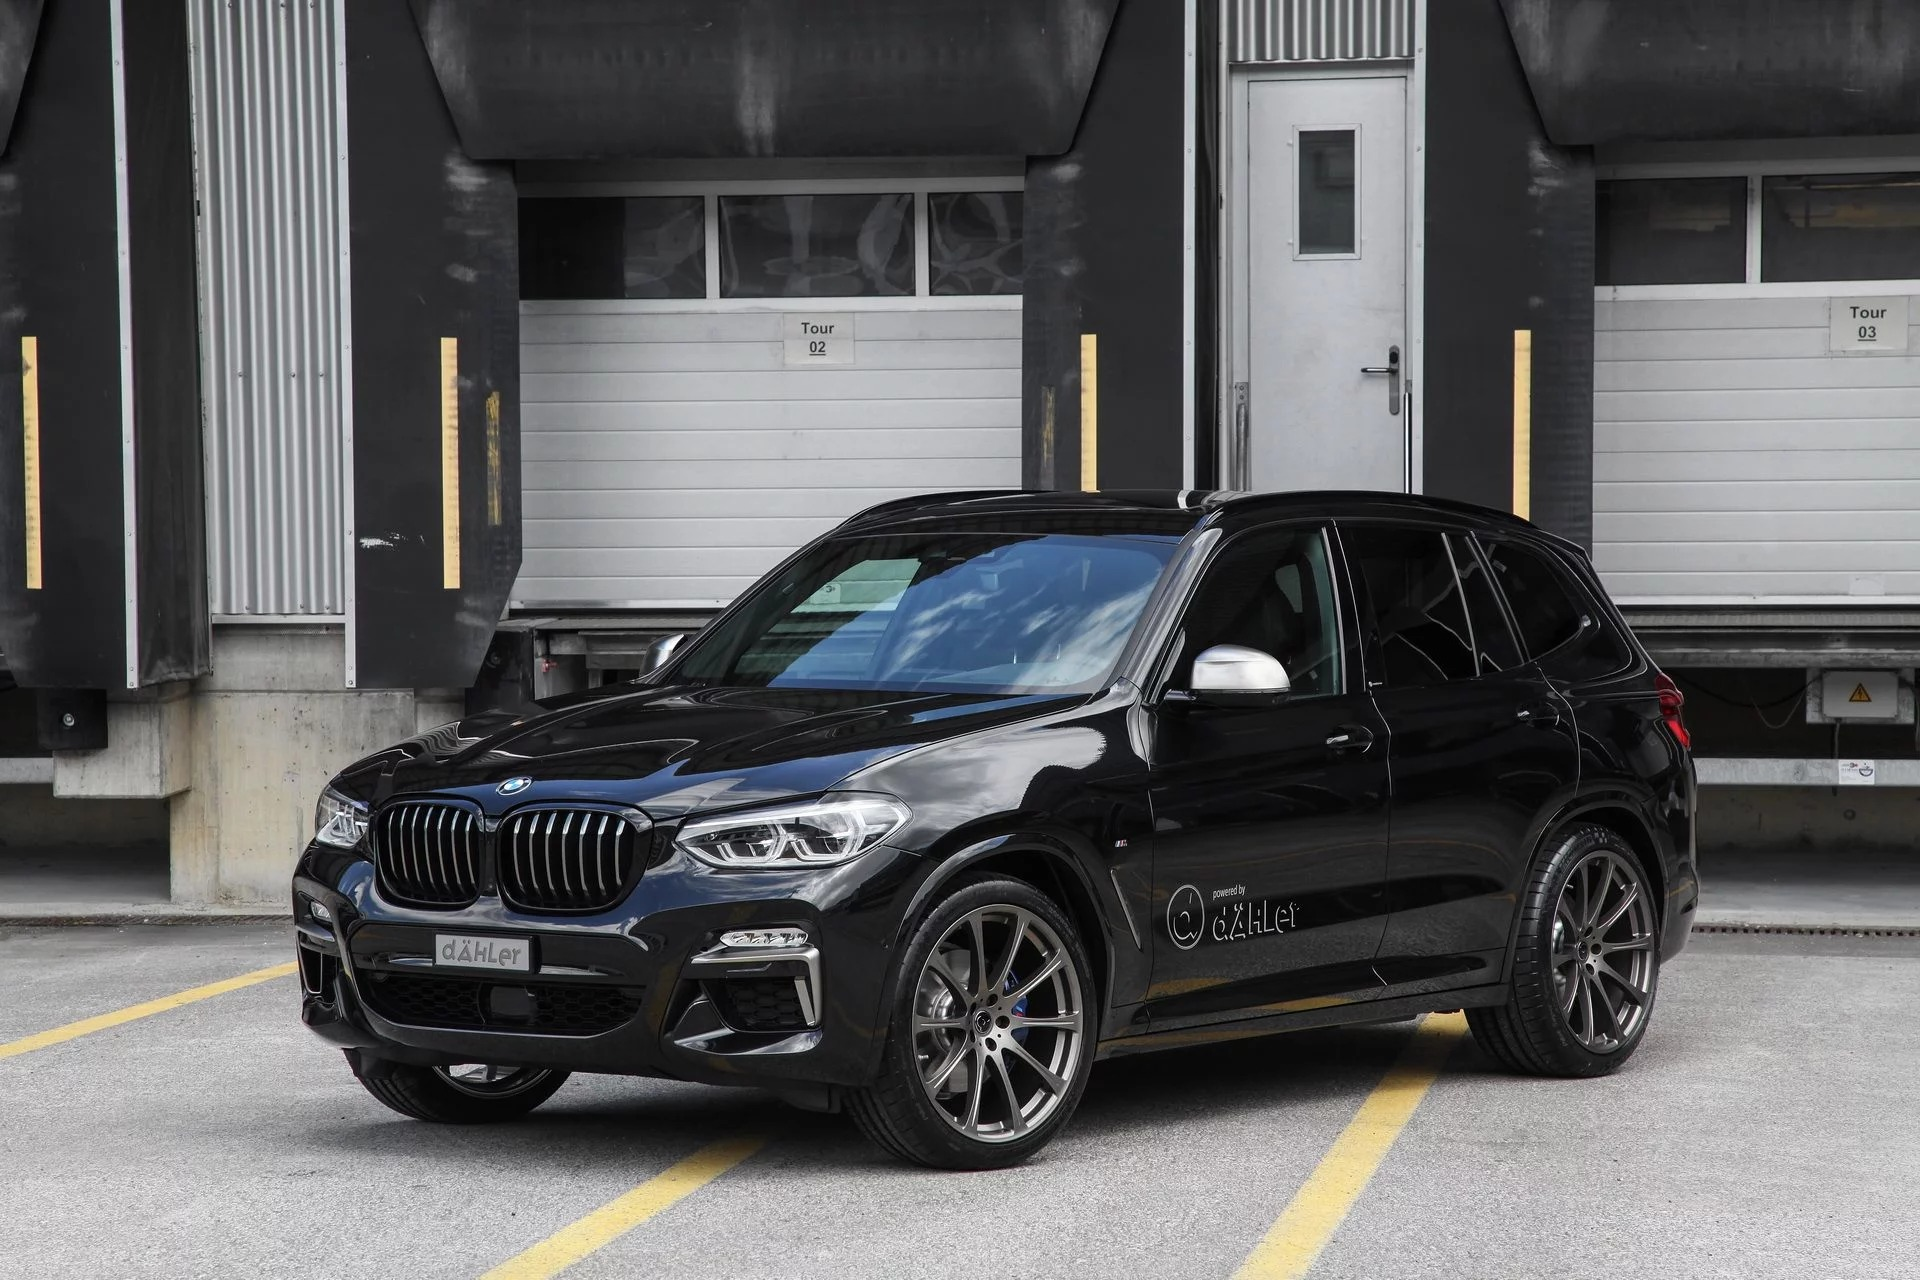 dahler cranks bmw x3 m40i up to 414 hp 309 kw. Black Bedroom Furniture Sets. Home Design Ideas